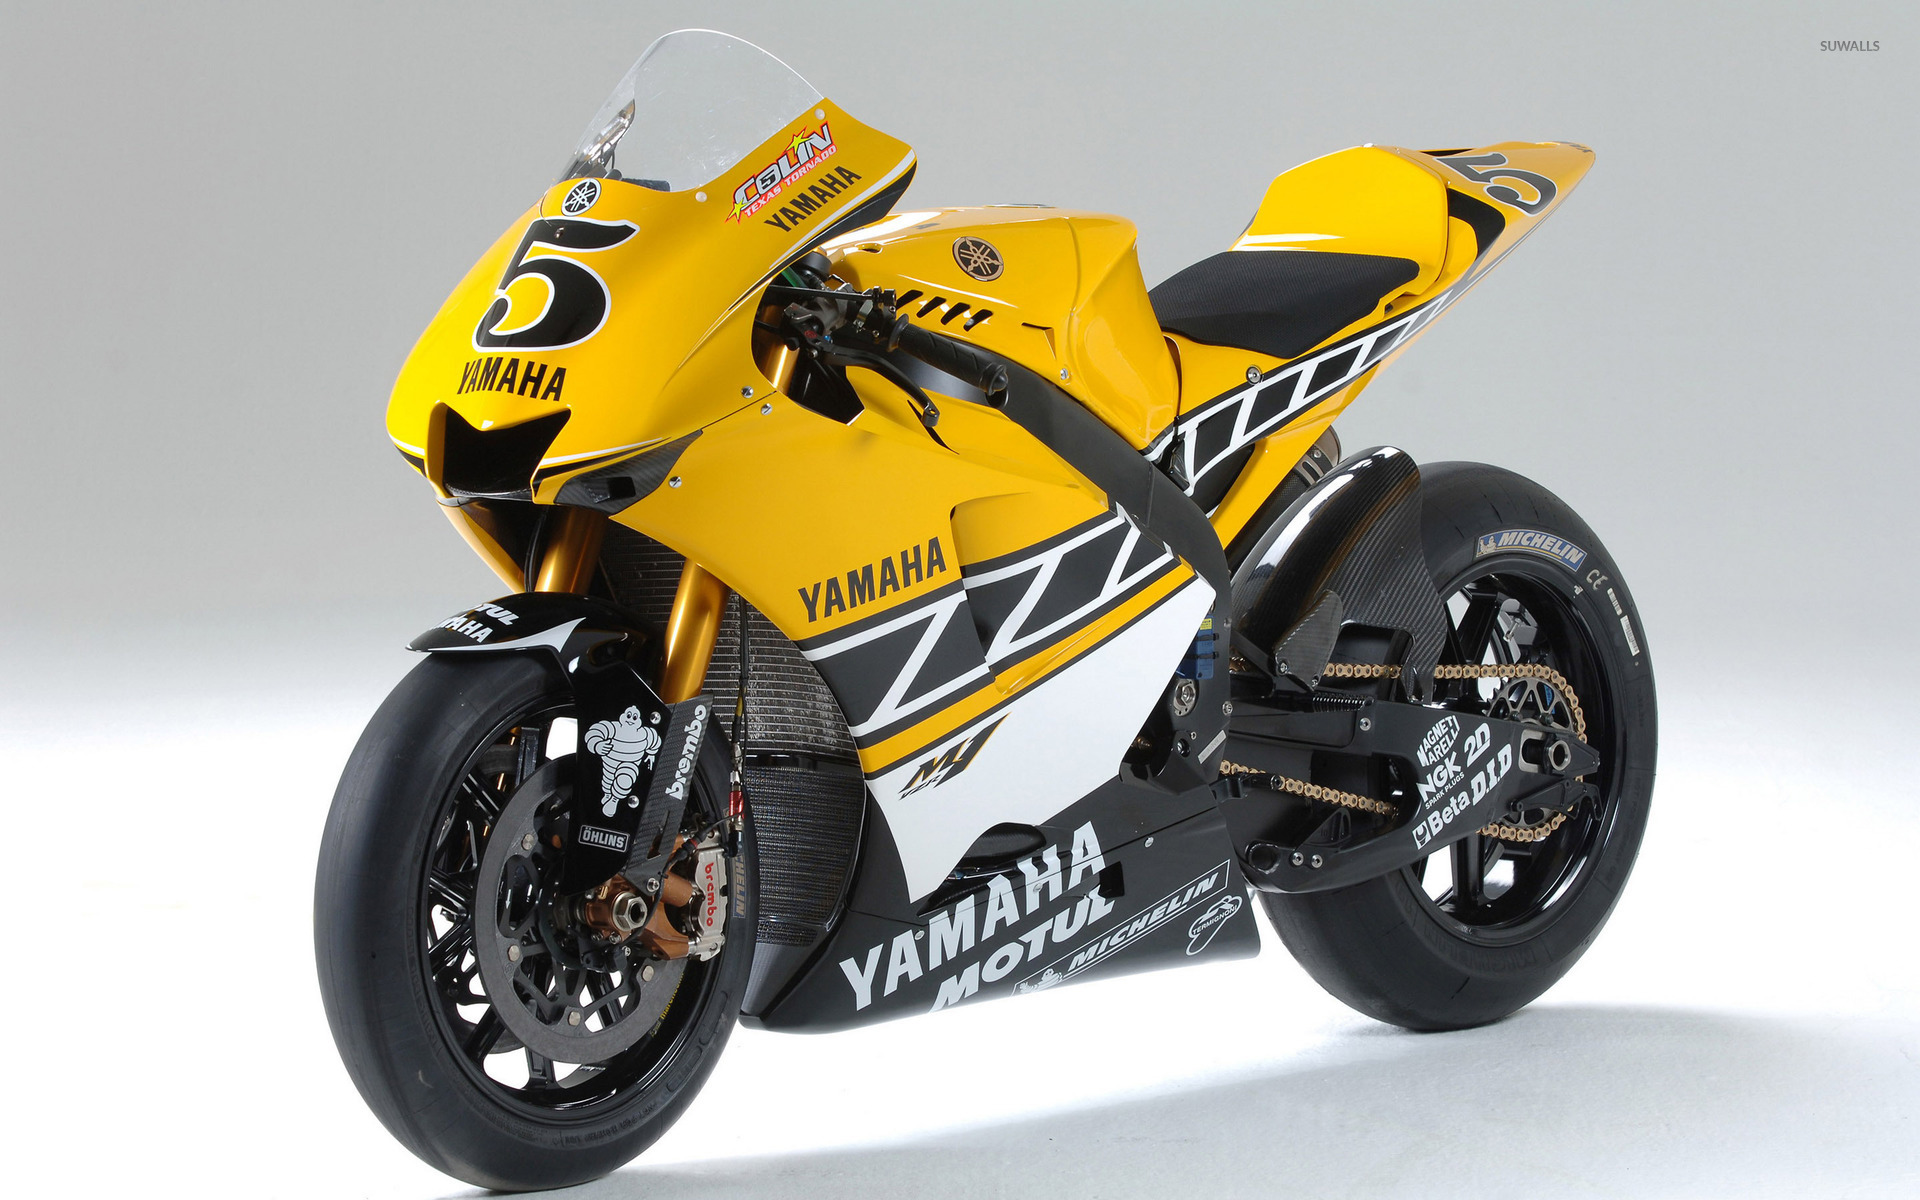 yamaha yzr m1 2 wallpaper motorcycle wallpapers 30575. Black Bedroom Furniture Sets. Home Design Ideas